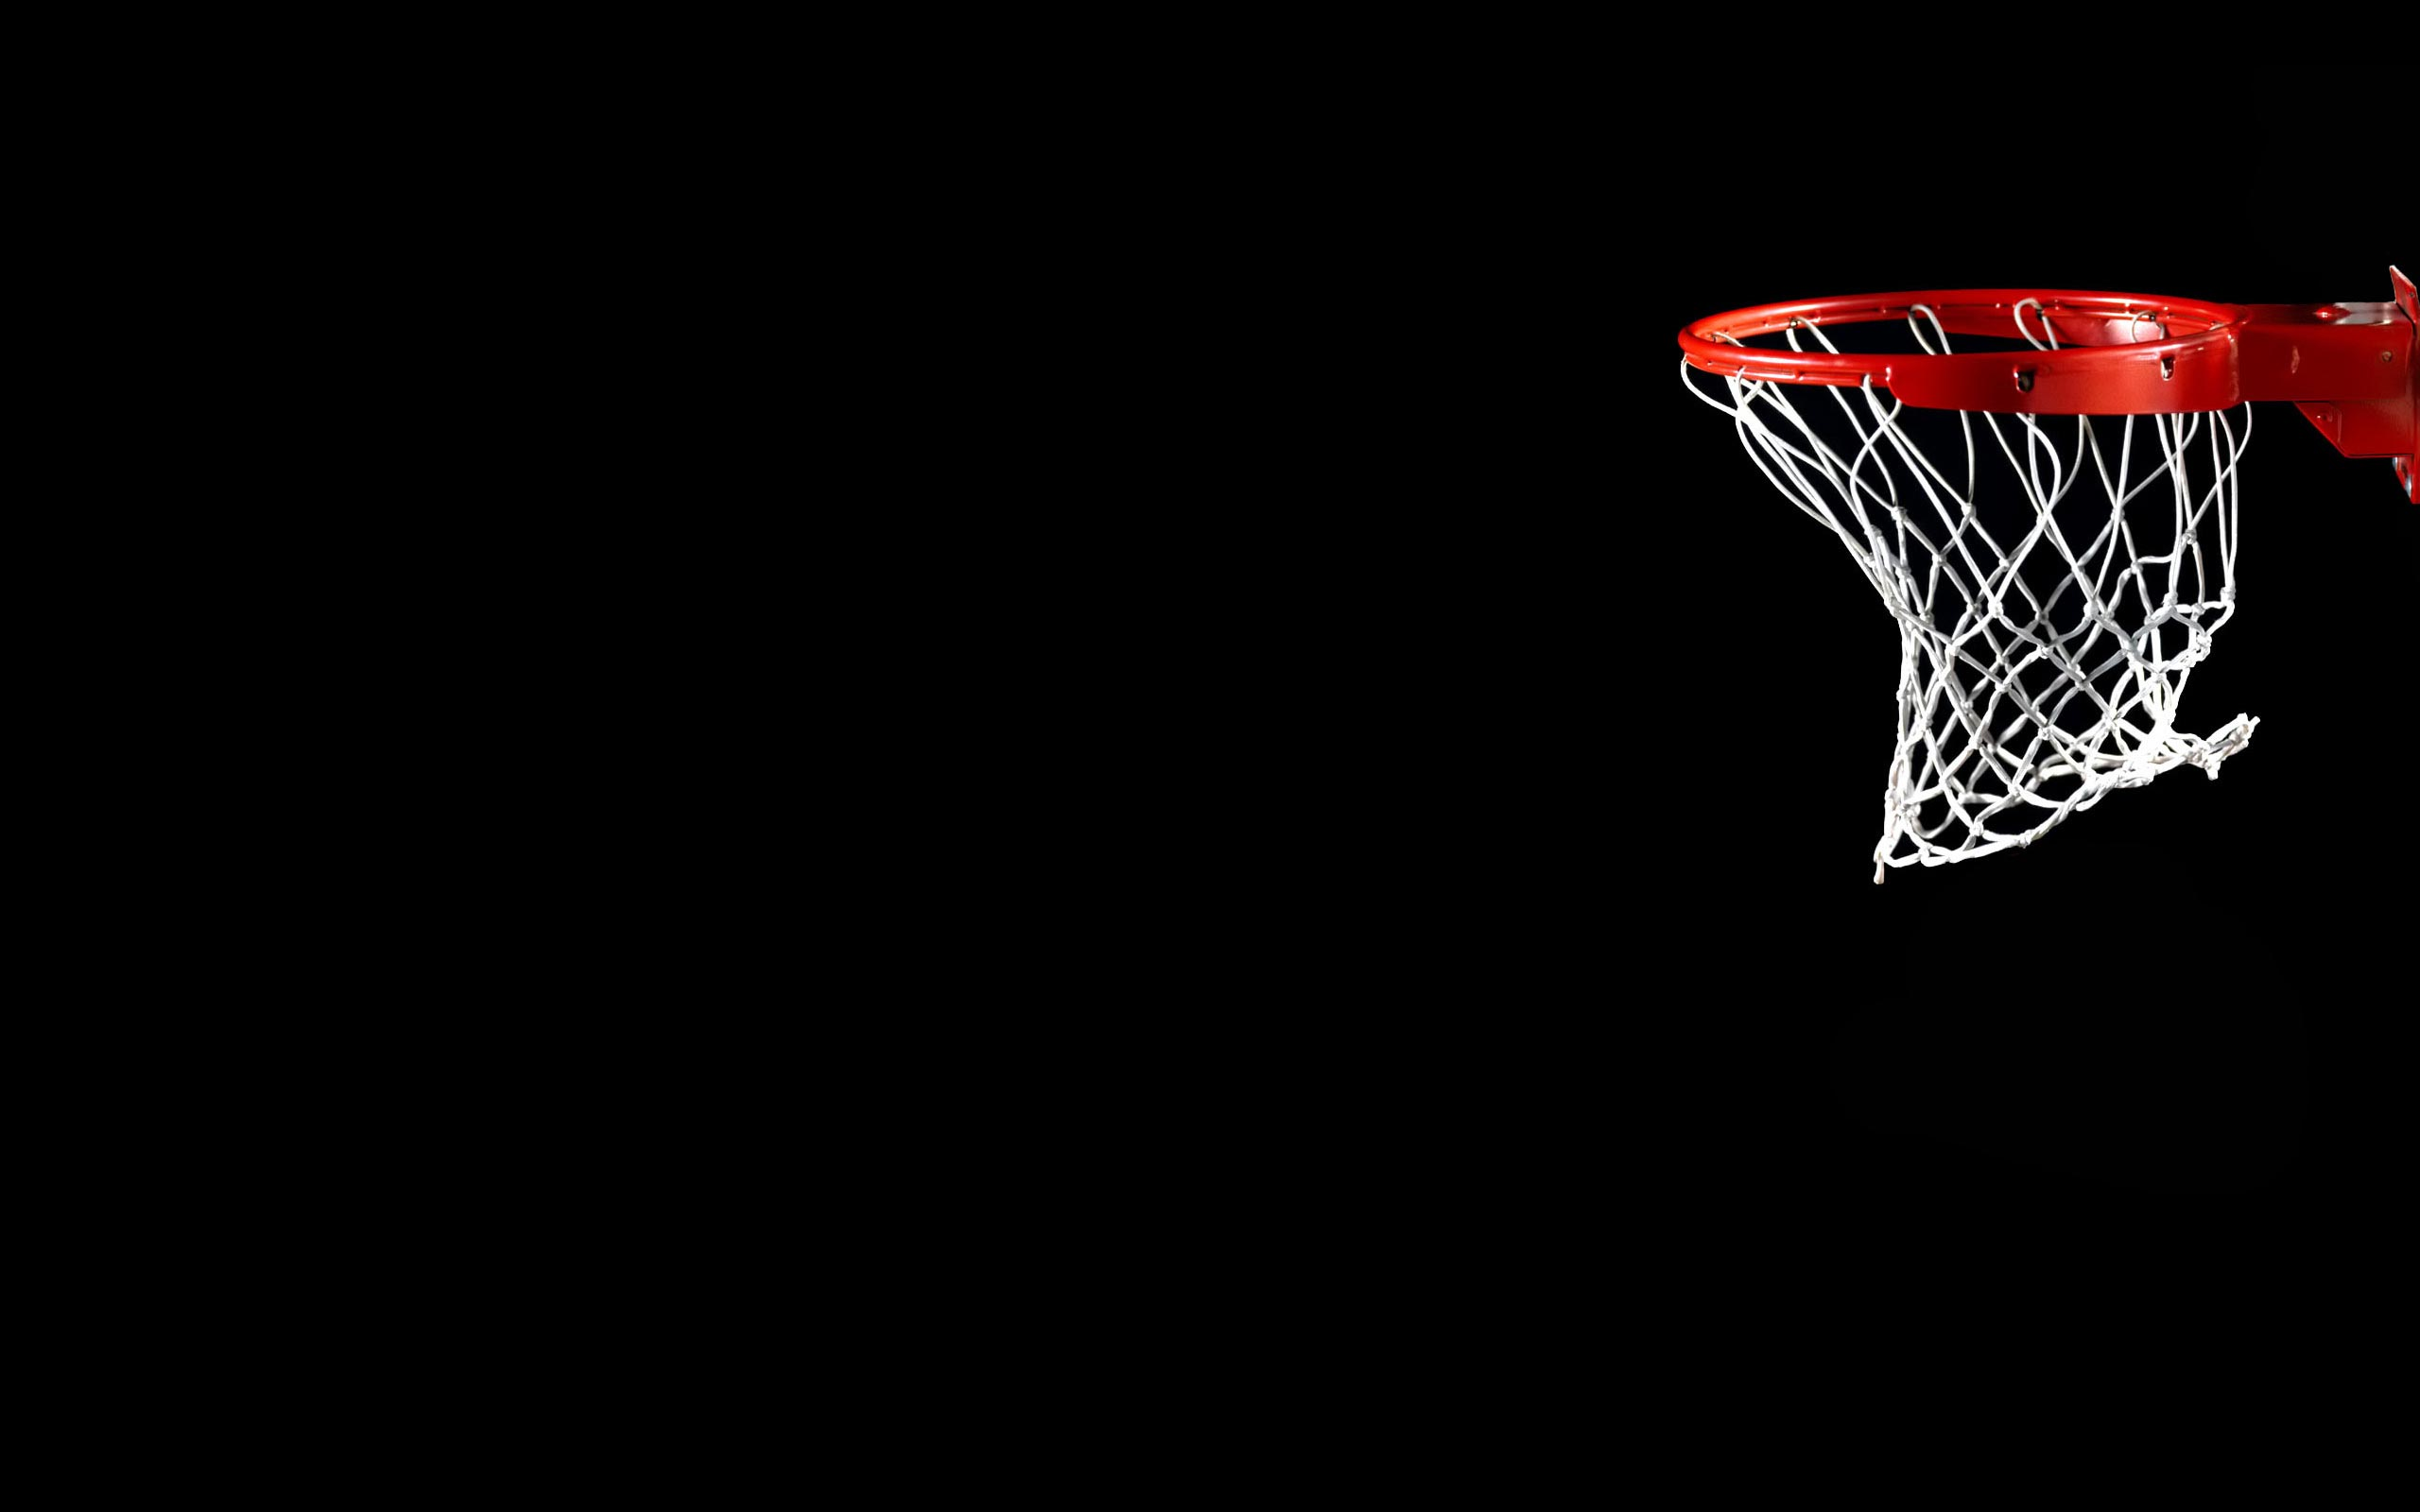 HD Basketball Wallpapers 9